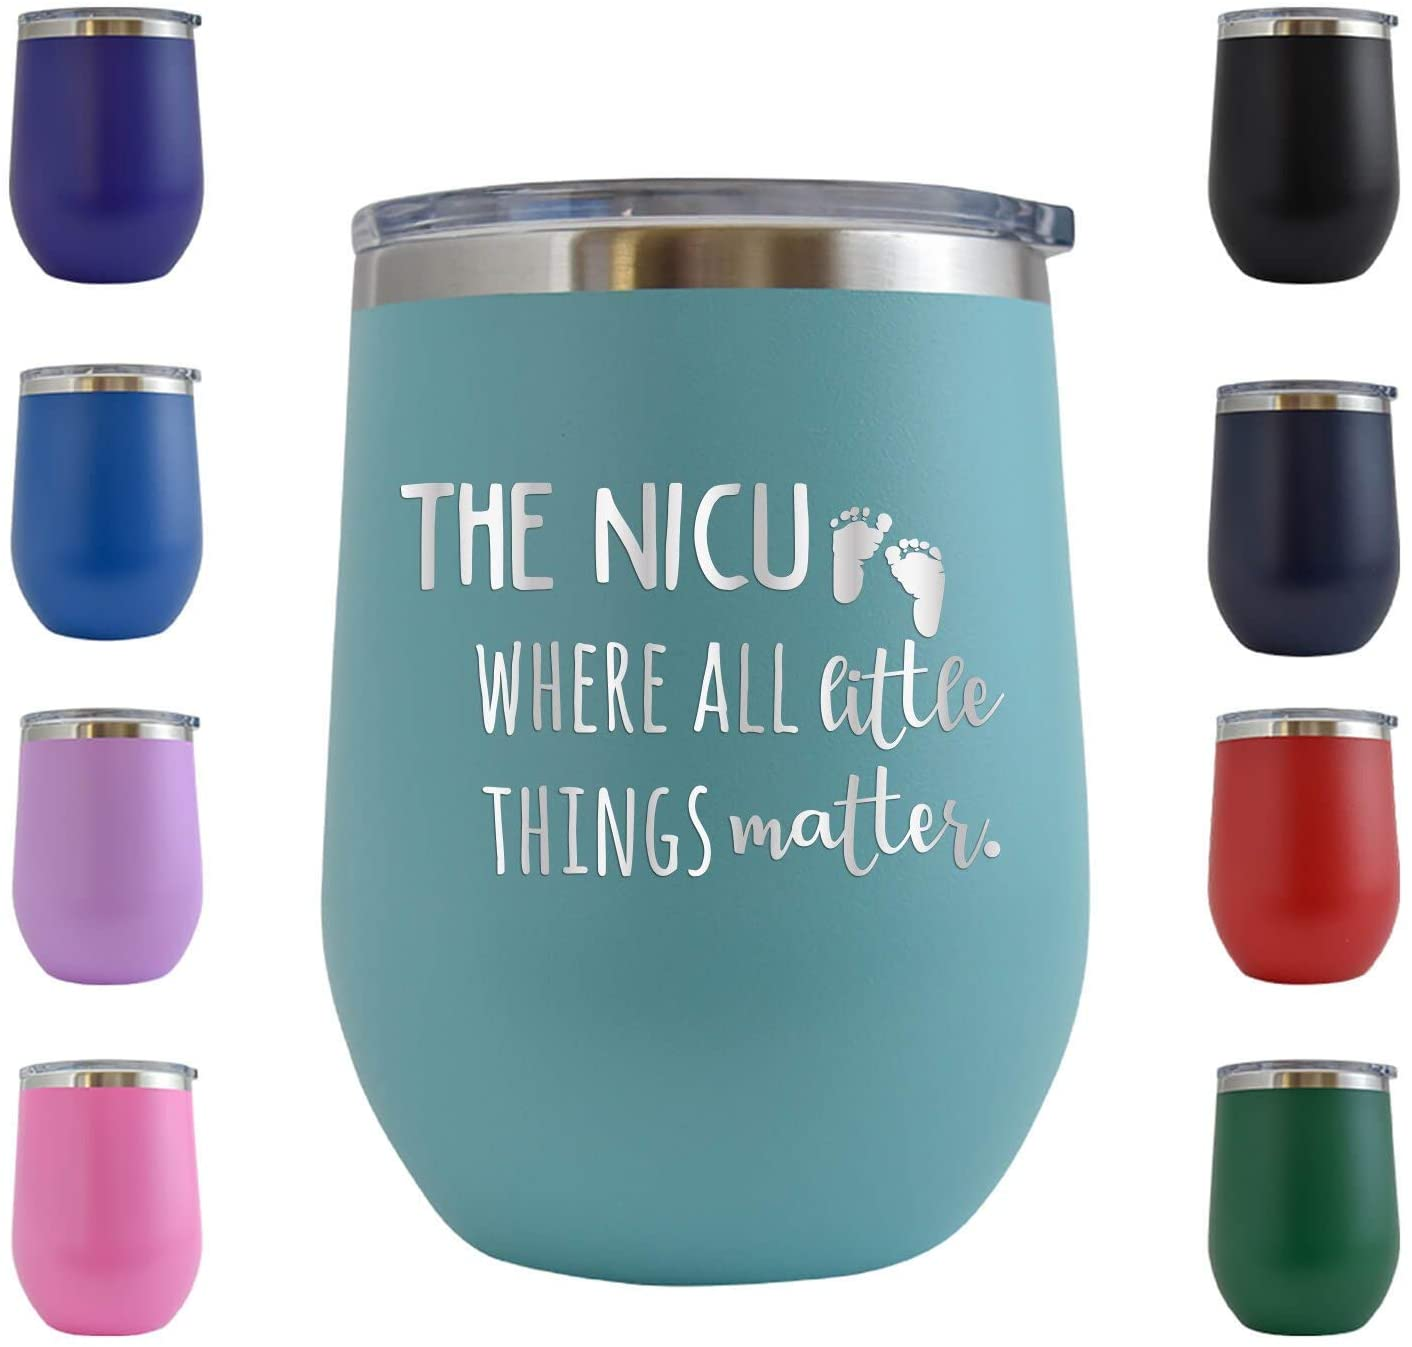 I'm A NICU Where All Little Things Matter 12 oz Stemless Wine Glass Cup Tumbler – Birthday Gifts for Nurses Week, Doctors, Nursing Graduation Novelty Gift Idea for women or men RN (Teal - 12 oz)